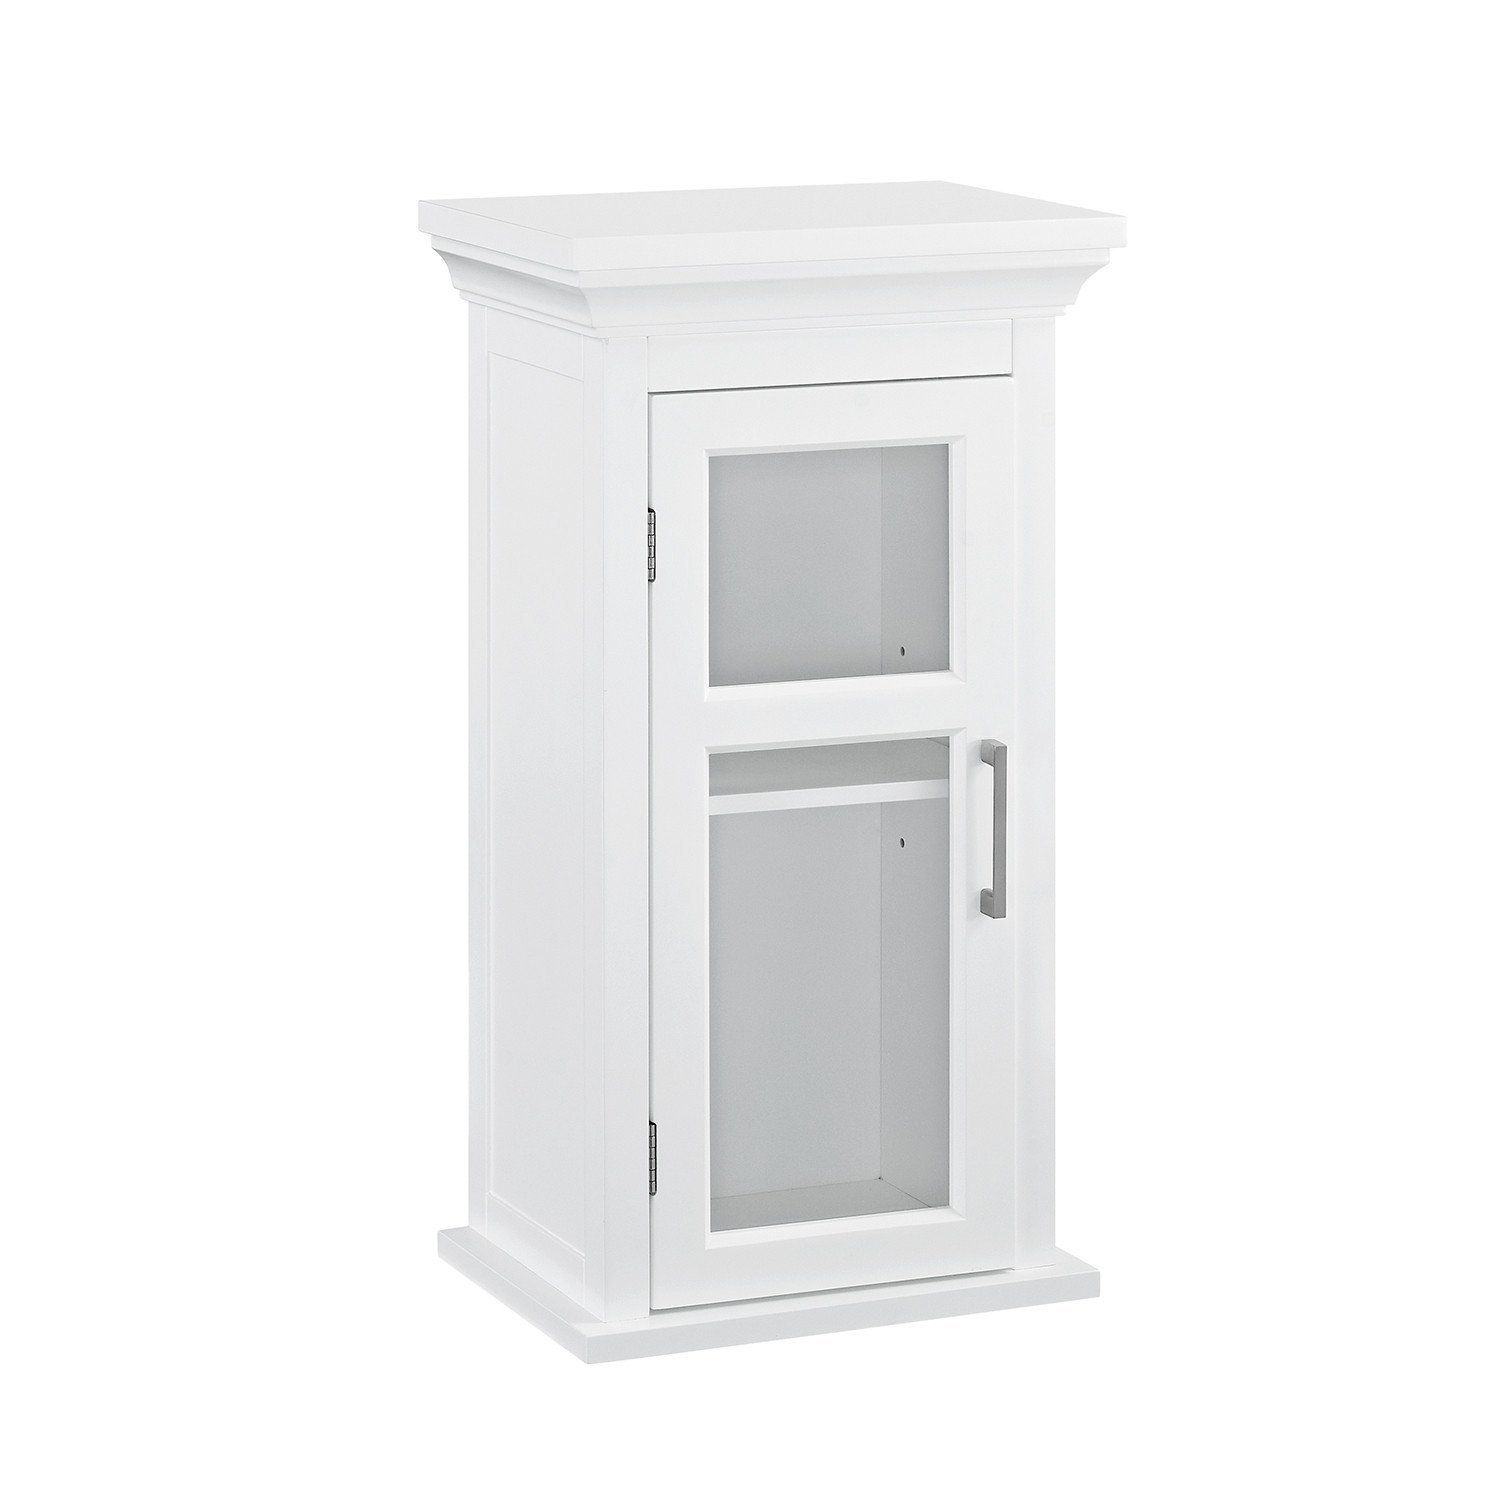 Delicieux Avington 10 X 15 X 27 Inch Single Door Wall Cabinet In White